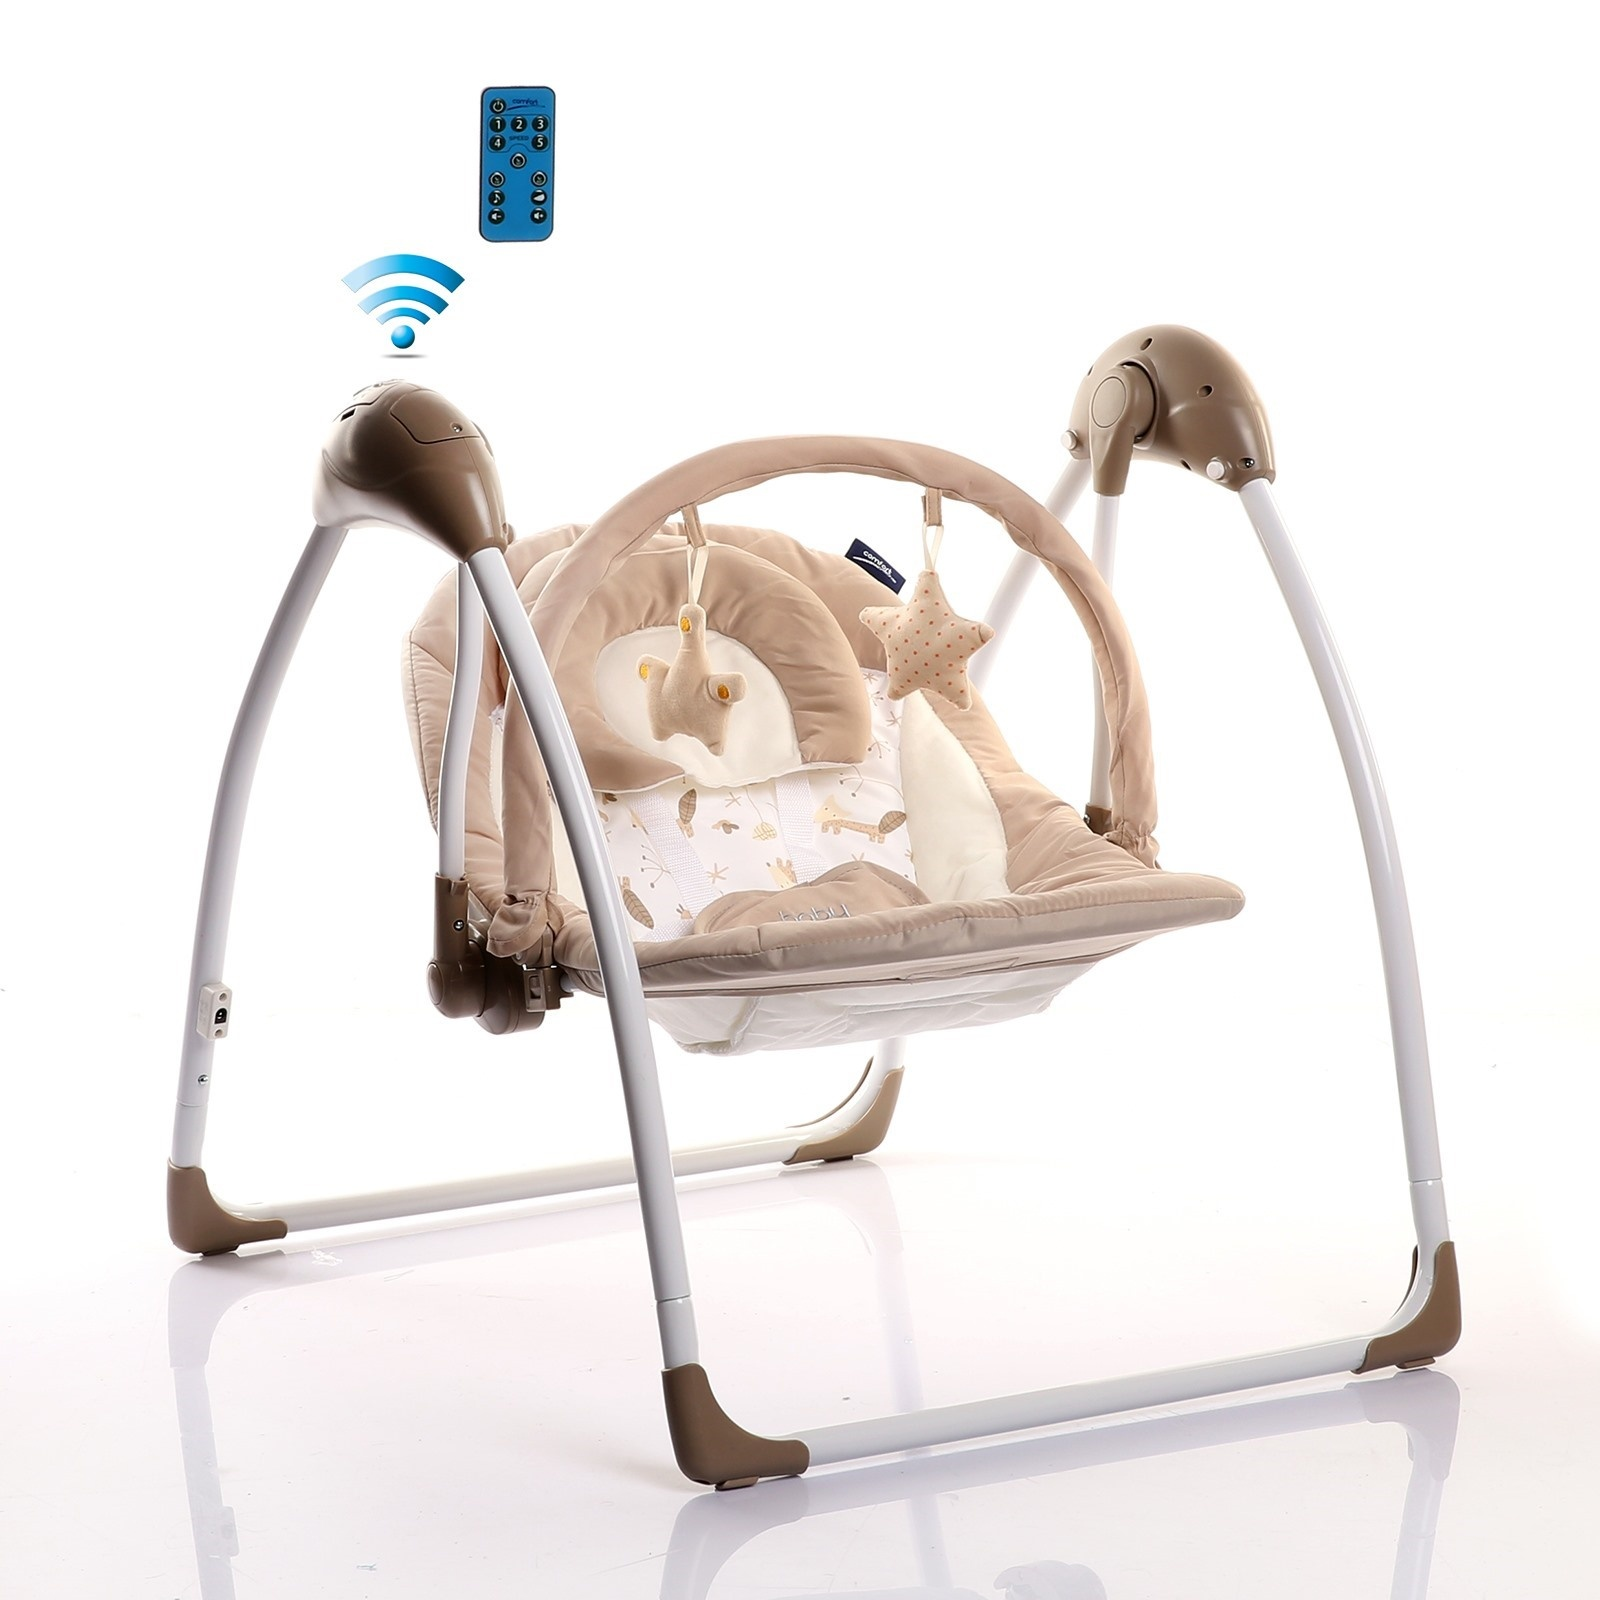 ebebek baby plus Comfort Automatic Swing